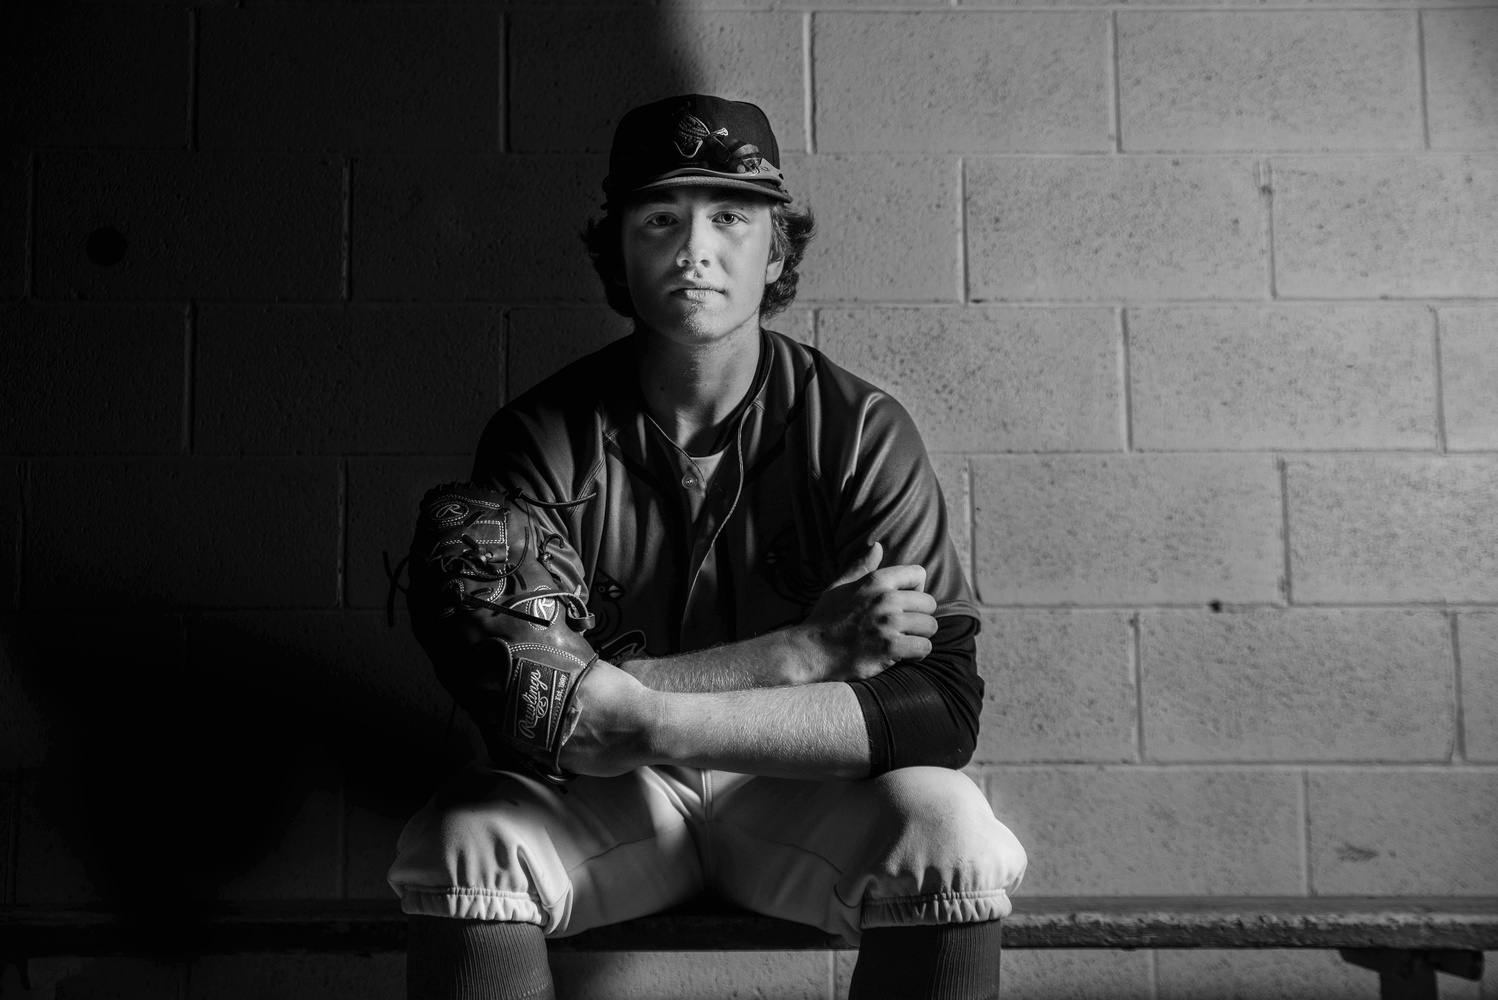 Baseball Portrait by Mike Ofstedahl